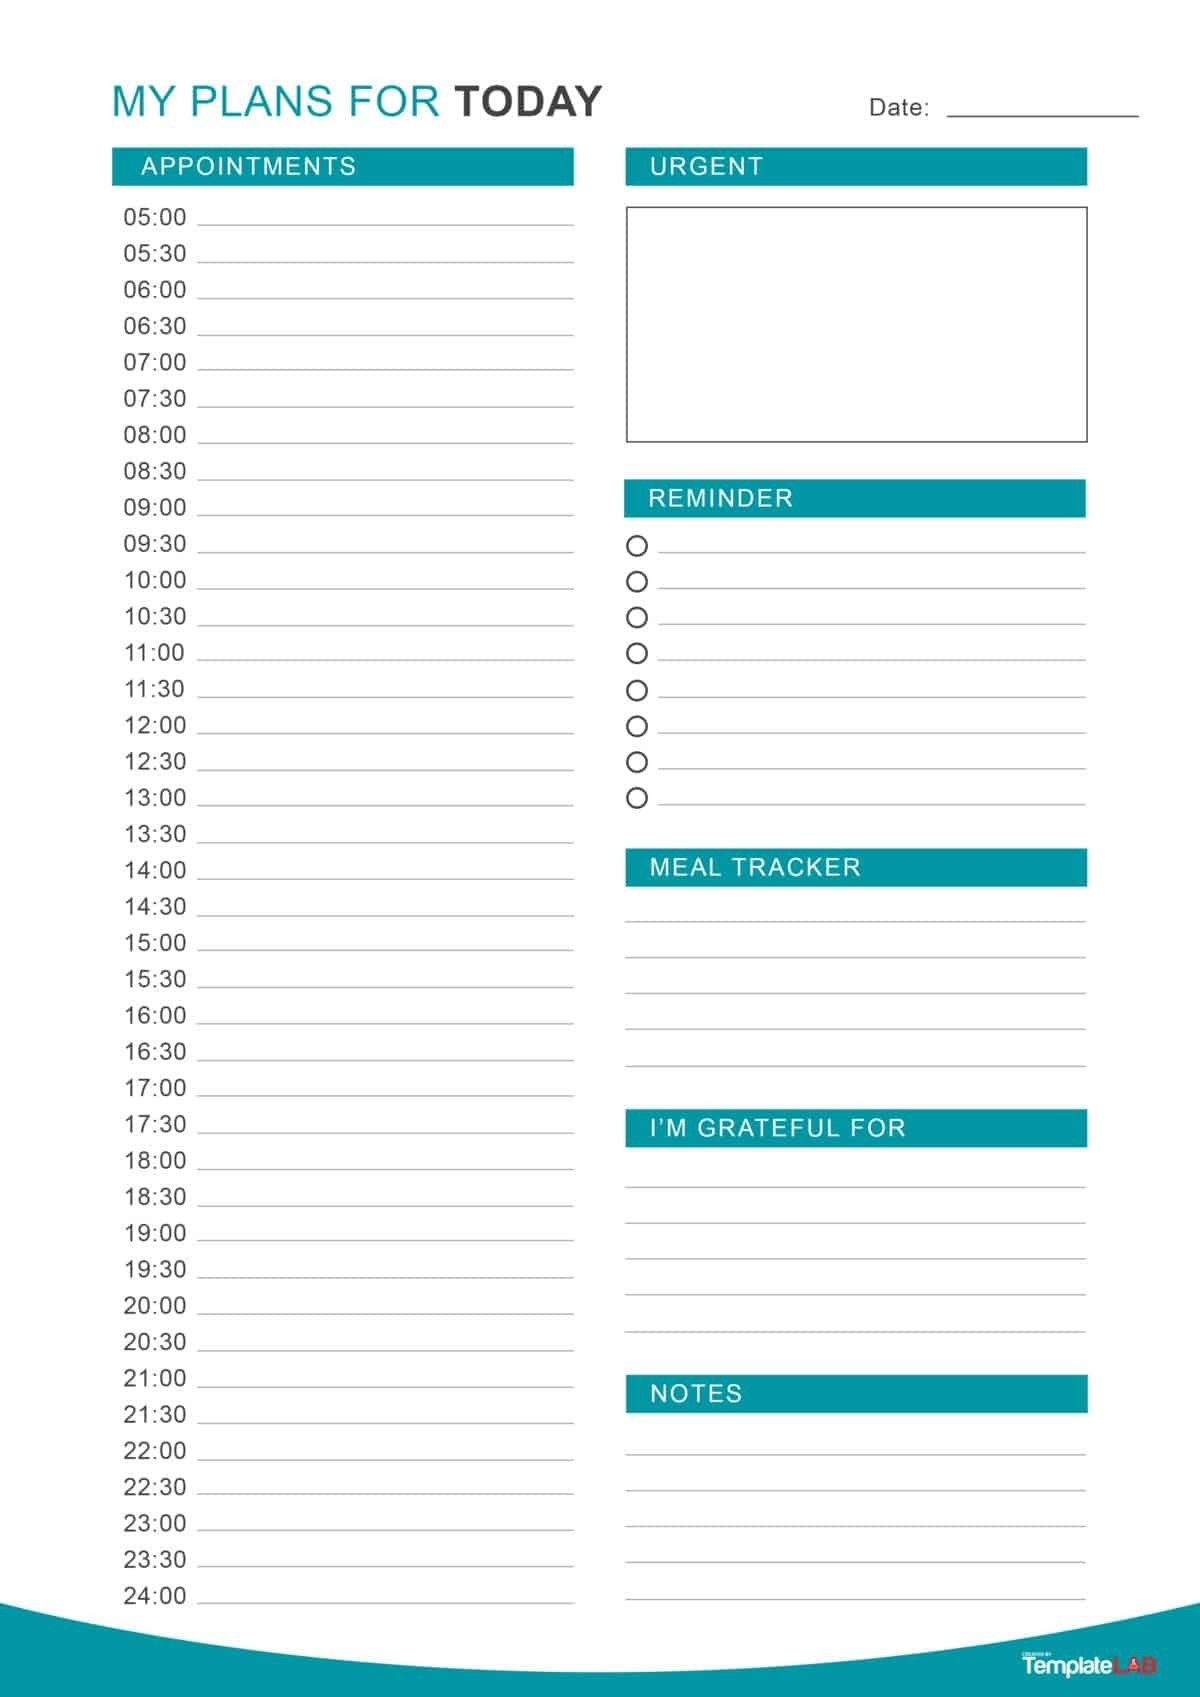 47 Printable Daily Planner Templates (Free In Word/excel/pdf)-Daily Hourly Calendar Template 2020 Printable